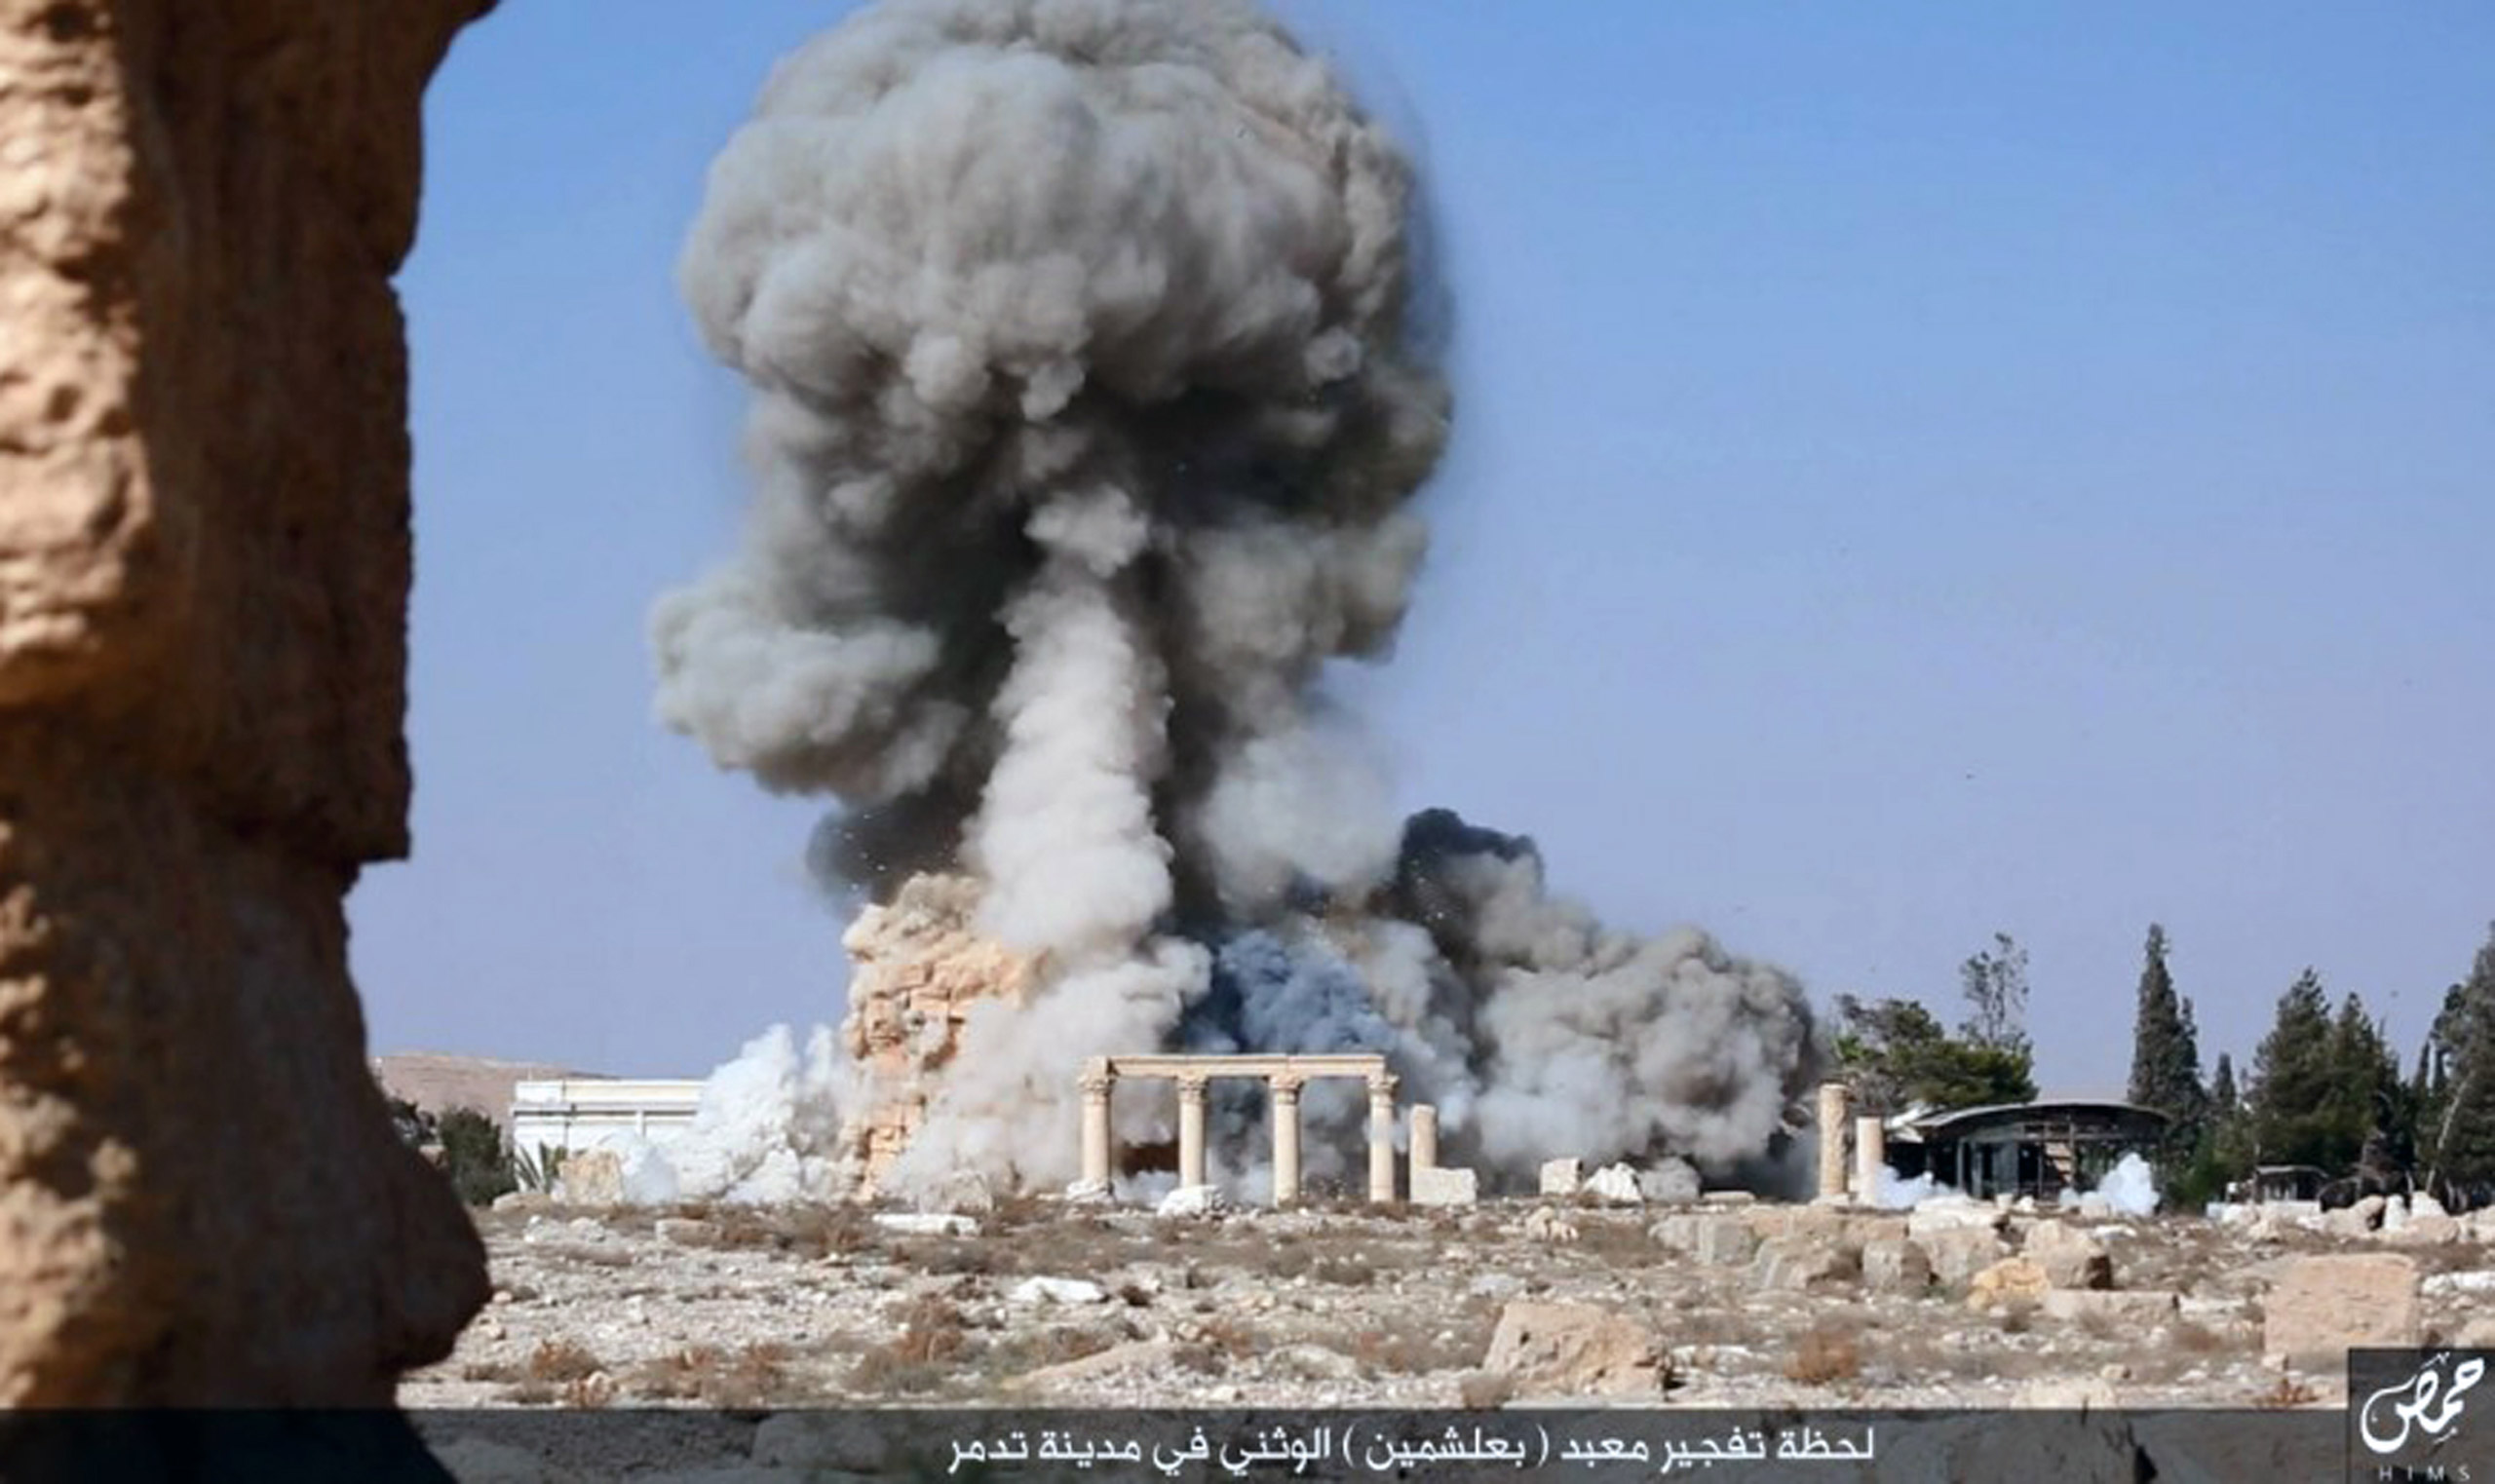 This undated photo released on Aug. 25, 2015 on a social media site used by Islamic State of Iraq and Syria (ISIS) militants shows smoke from the detonation of the 2,000-year-old temple of Baalshamin in the ancient caravan city of Palmyra, Syria.